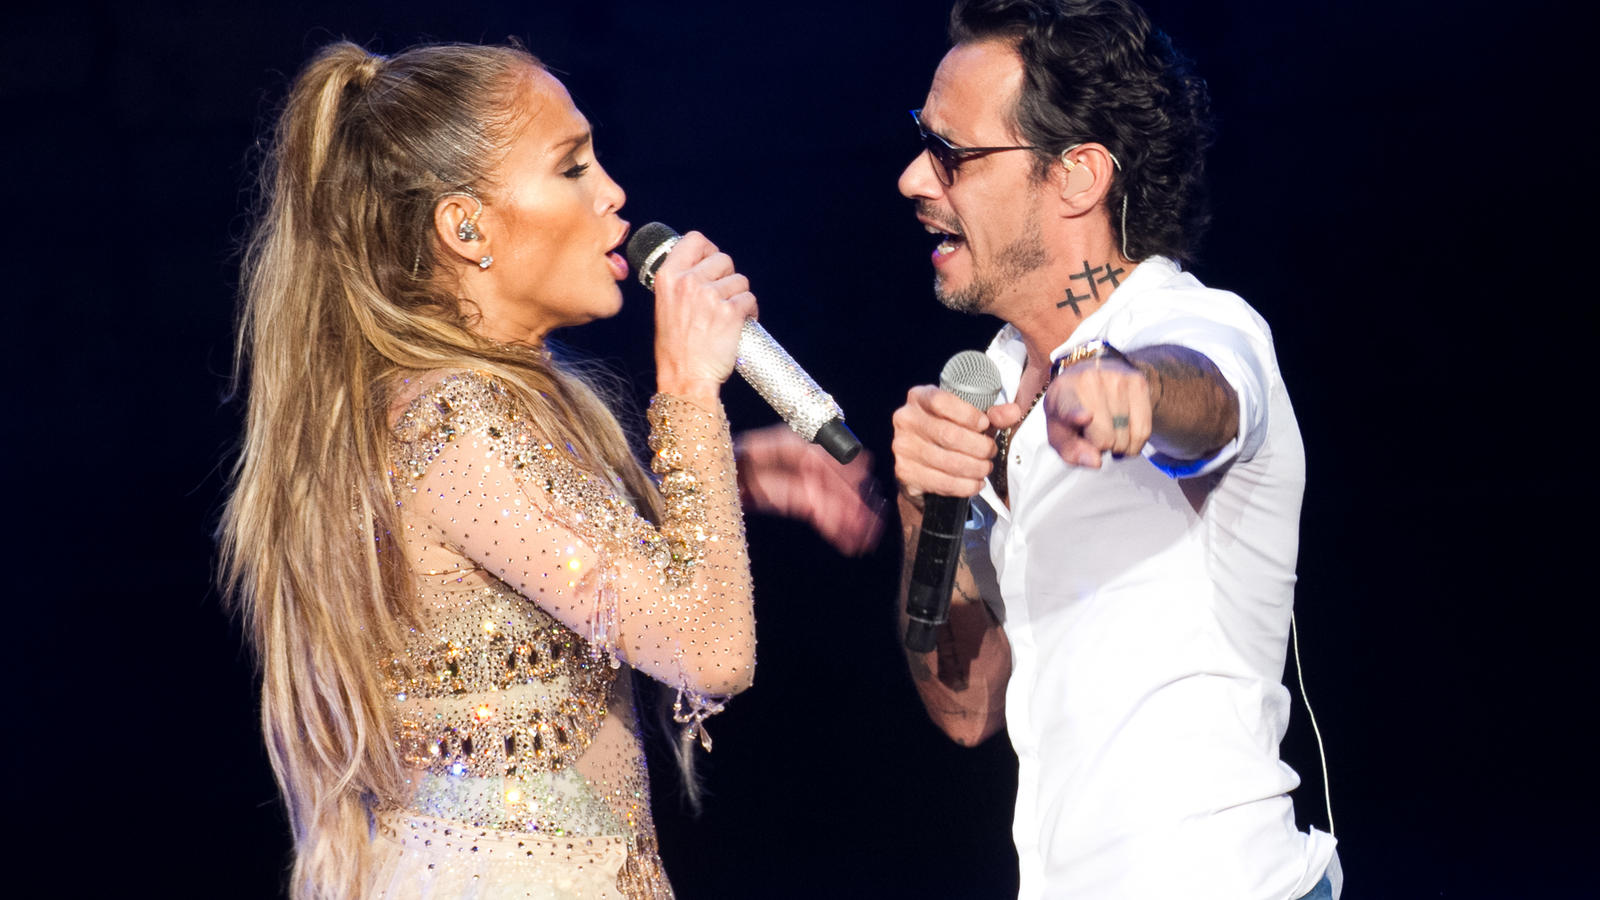 Jennifer Lopez rocks the stage in her first ever Dominican Republic concert. The superstar wowed crowds at the historic Altos de Chavon ampitheater as she performed a string of hits alongside ex husband Marc Anthony, as current boyfriend Alex Rodrigu